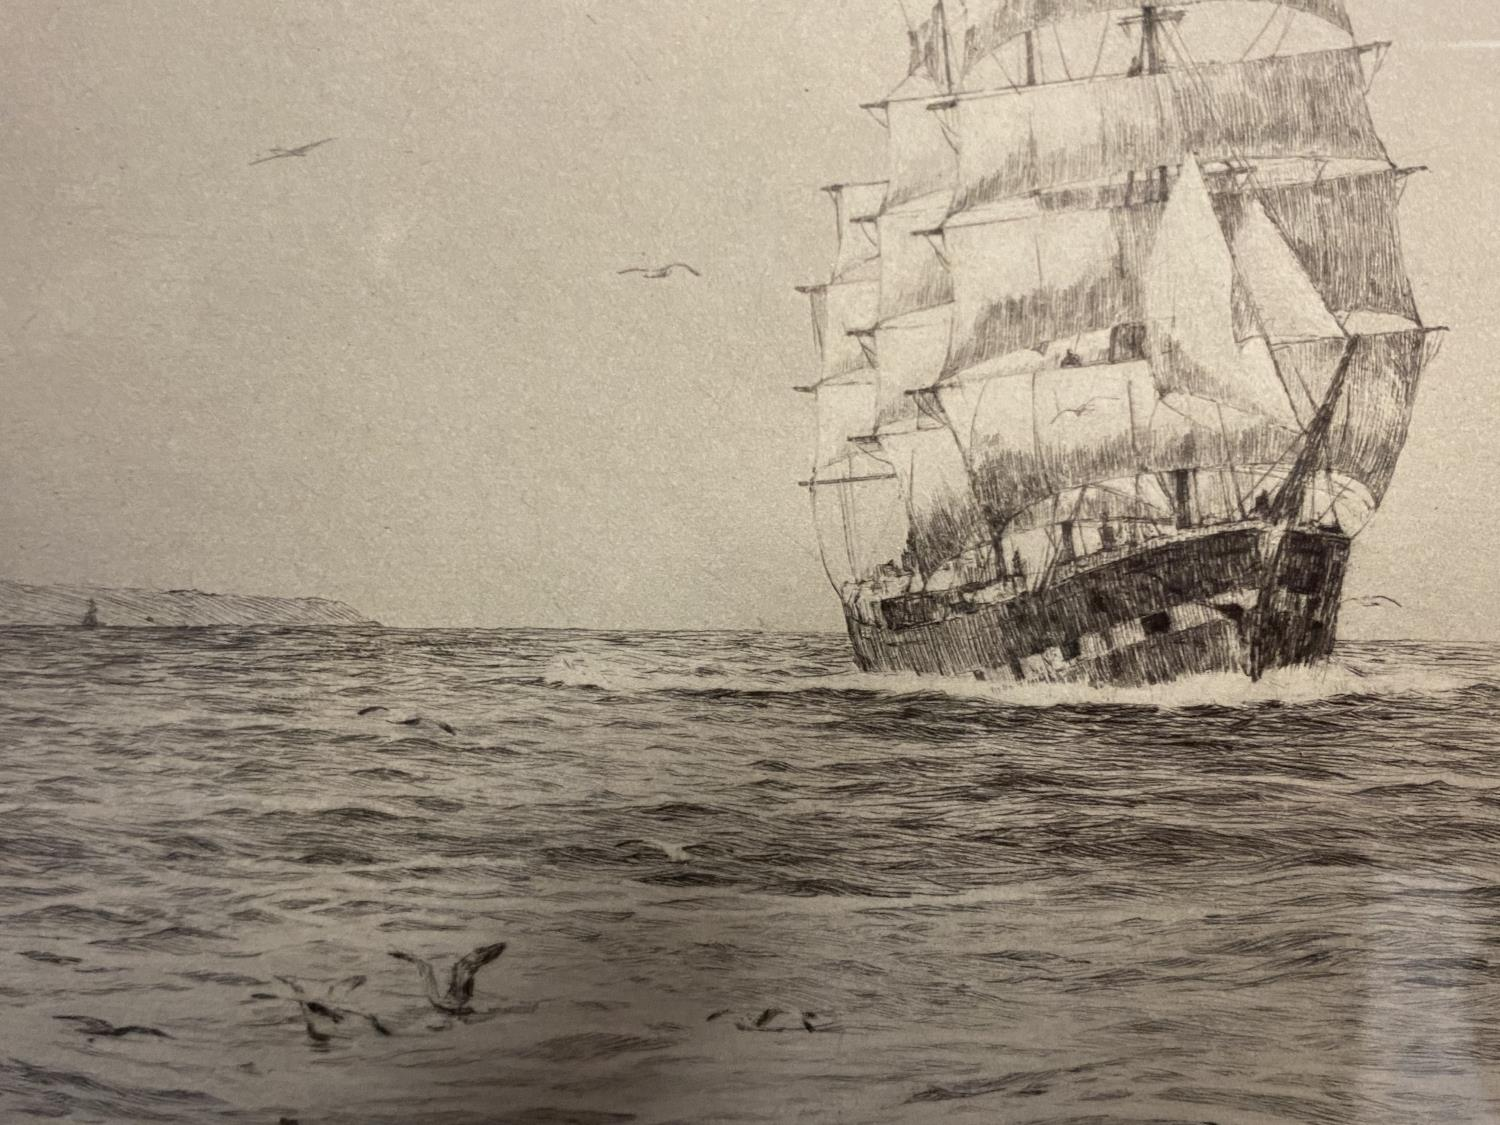 Black and White etching on Paper, Sailing ship fully rigged at sea, 17 x 30cm , signed and titled in - Image 12 of 15